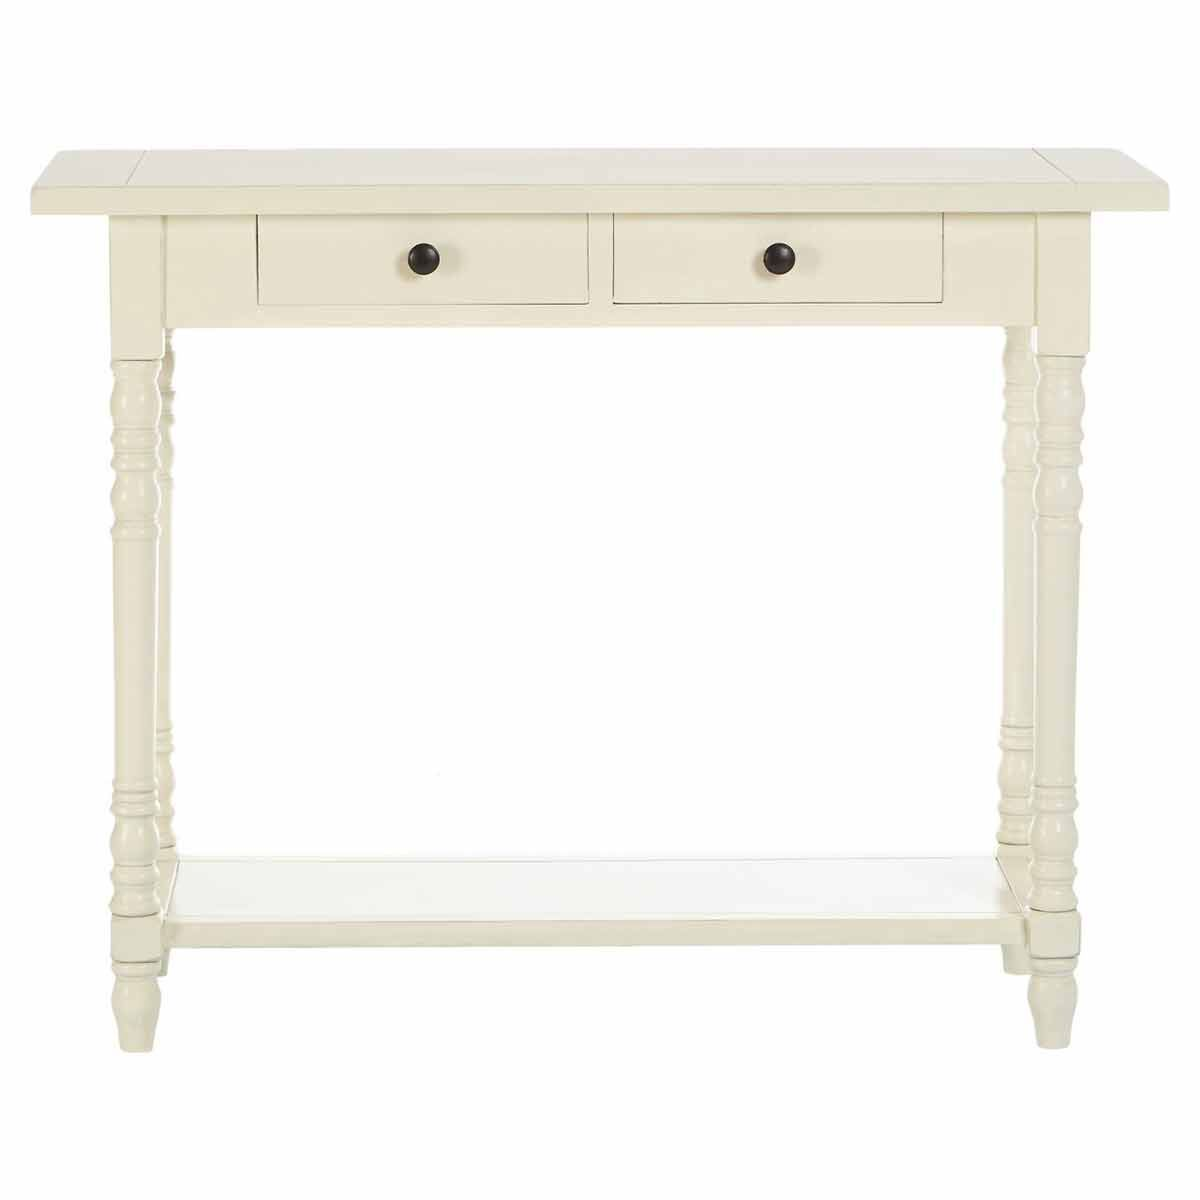 Premier Housewares Heritage Console Table with 2 Drawers